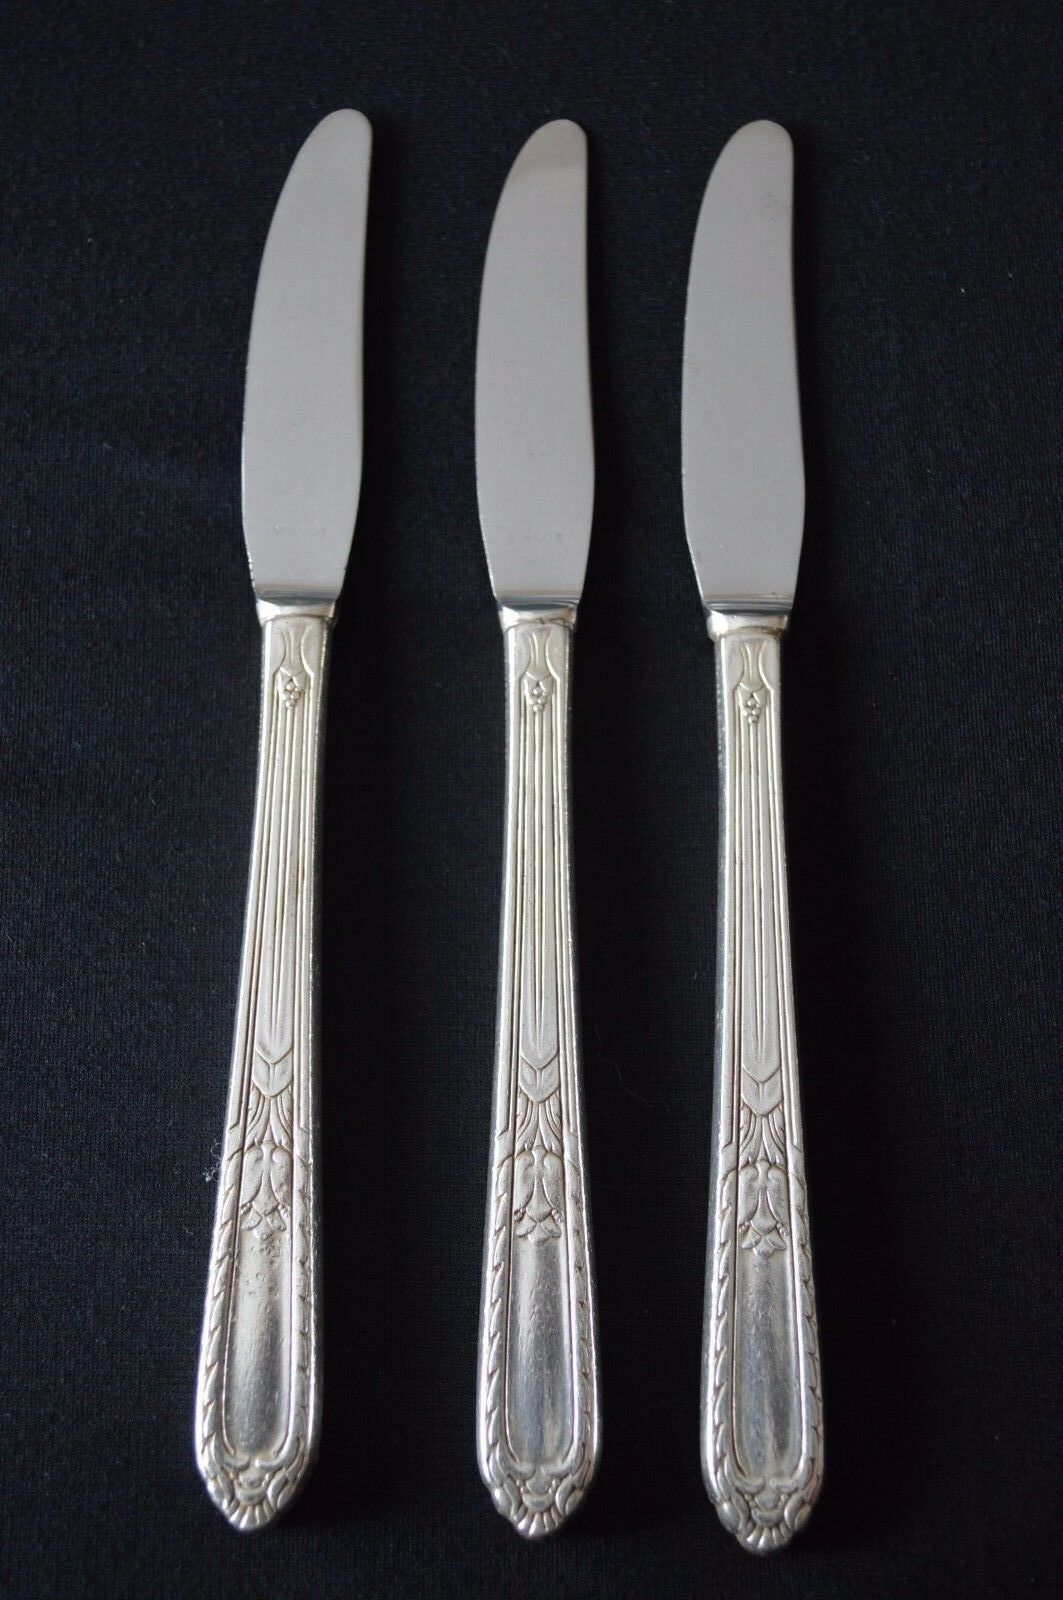 Primary image for Holmes & Edwards Pattern Masterpiece 1932 Set of 3 Grille Knives